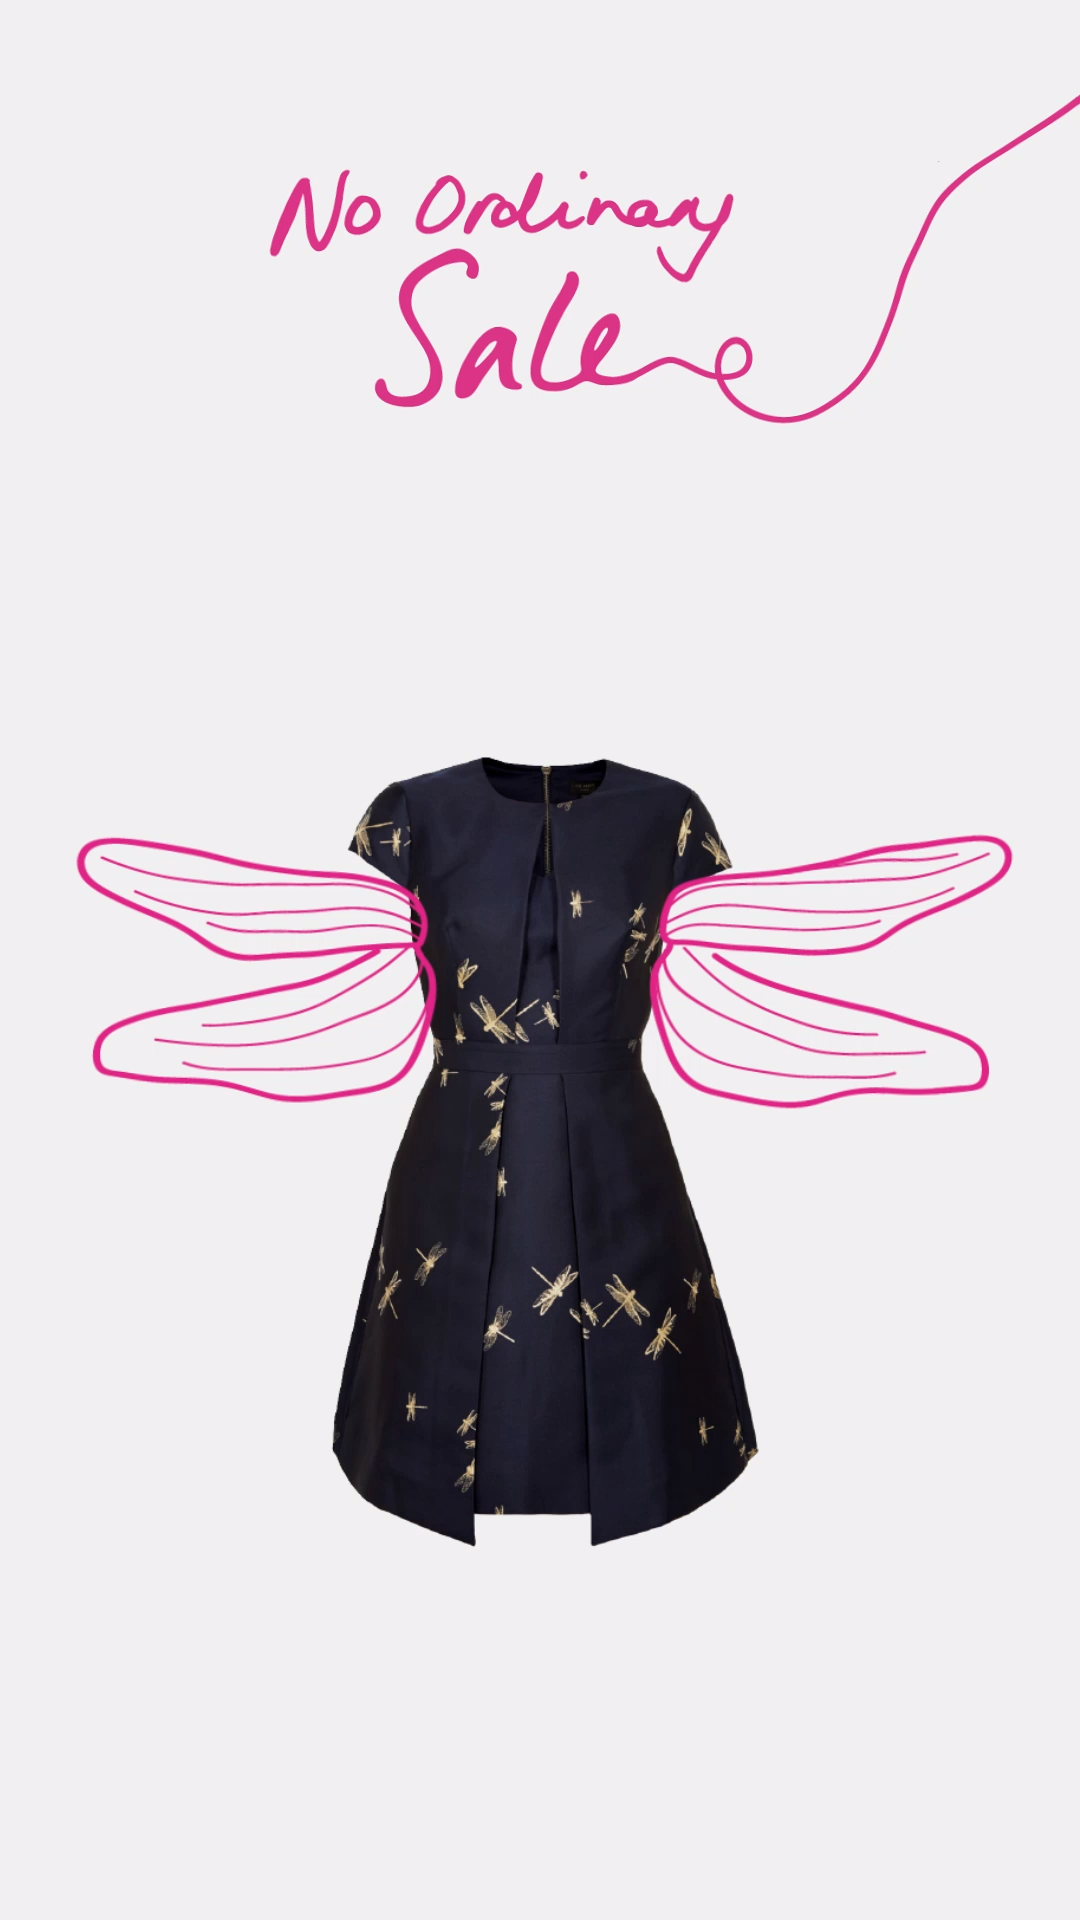 ff0c3987a5e Get set for any occasion with Ted's stylish selection of dresses ...